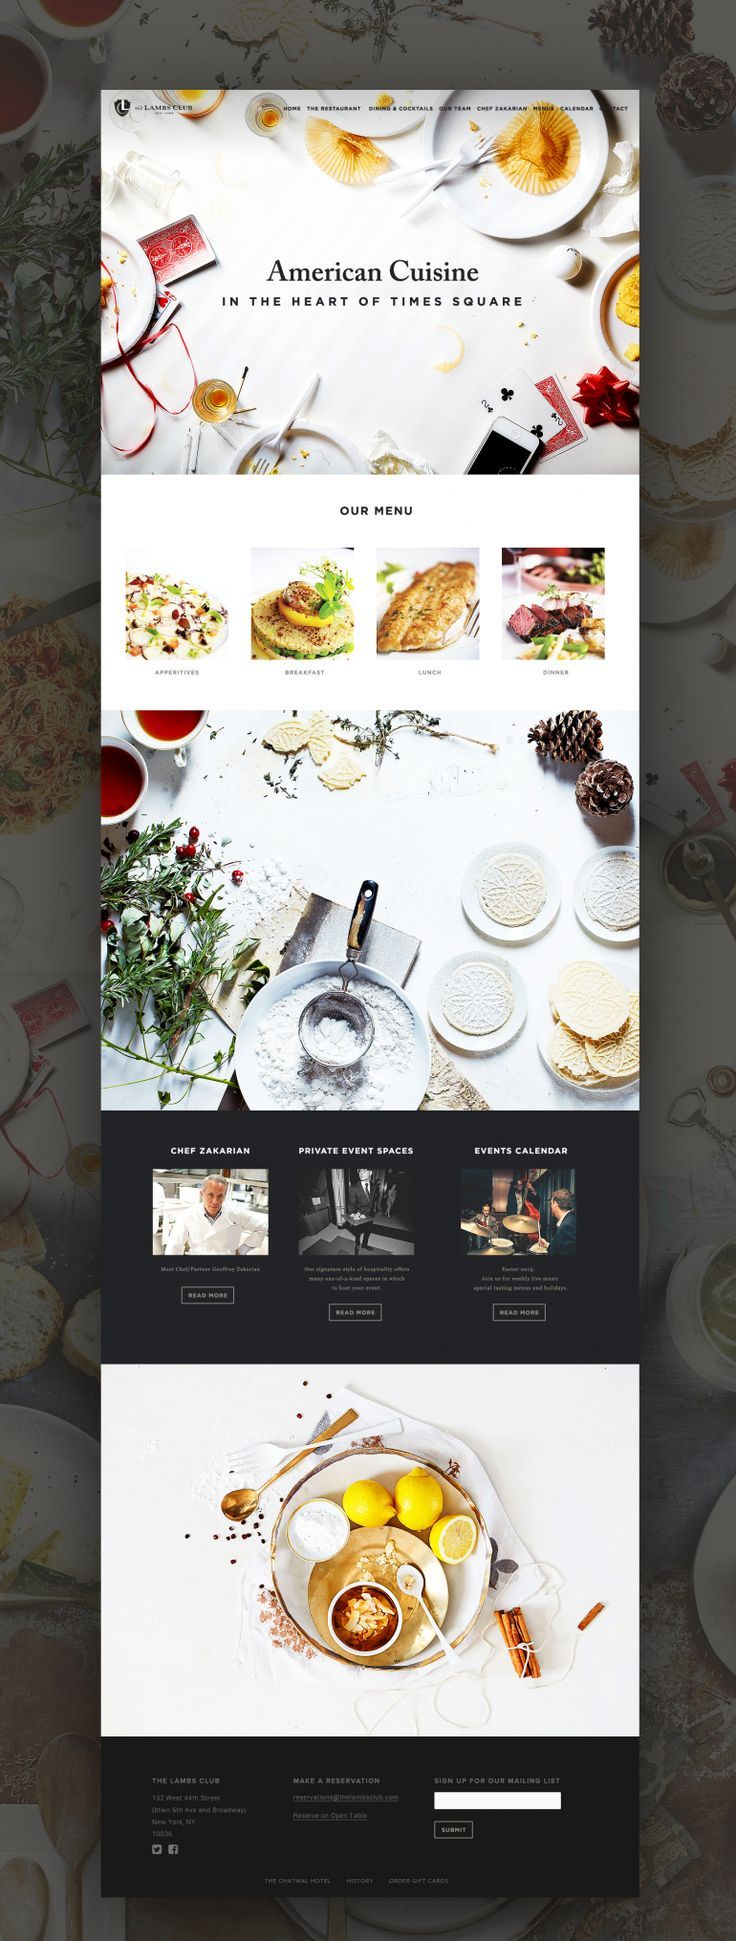 Lamb's Club Web Design